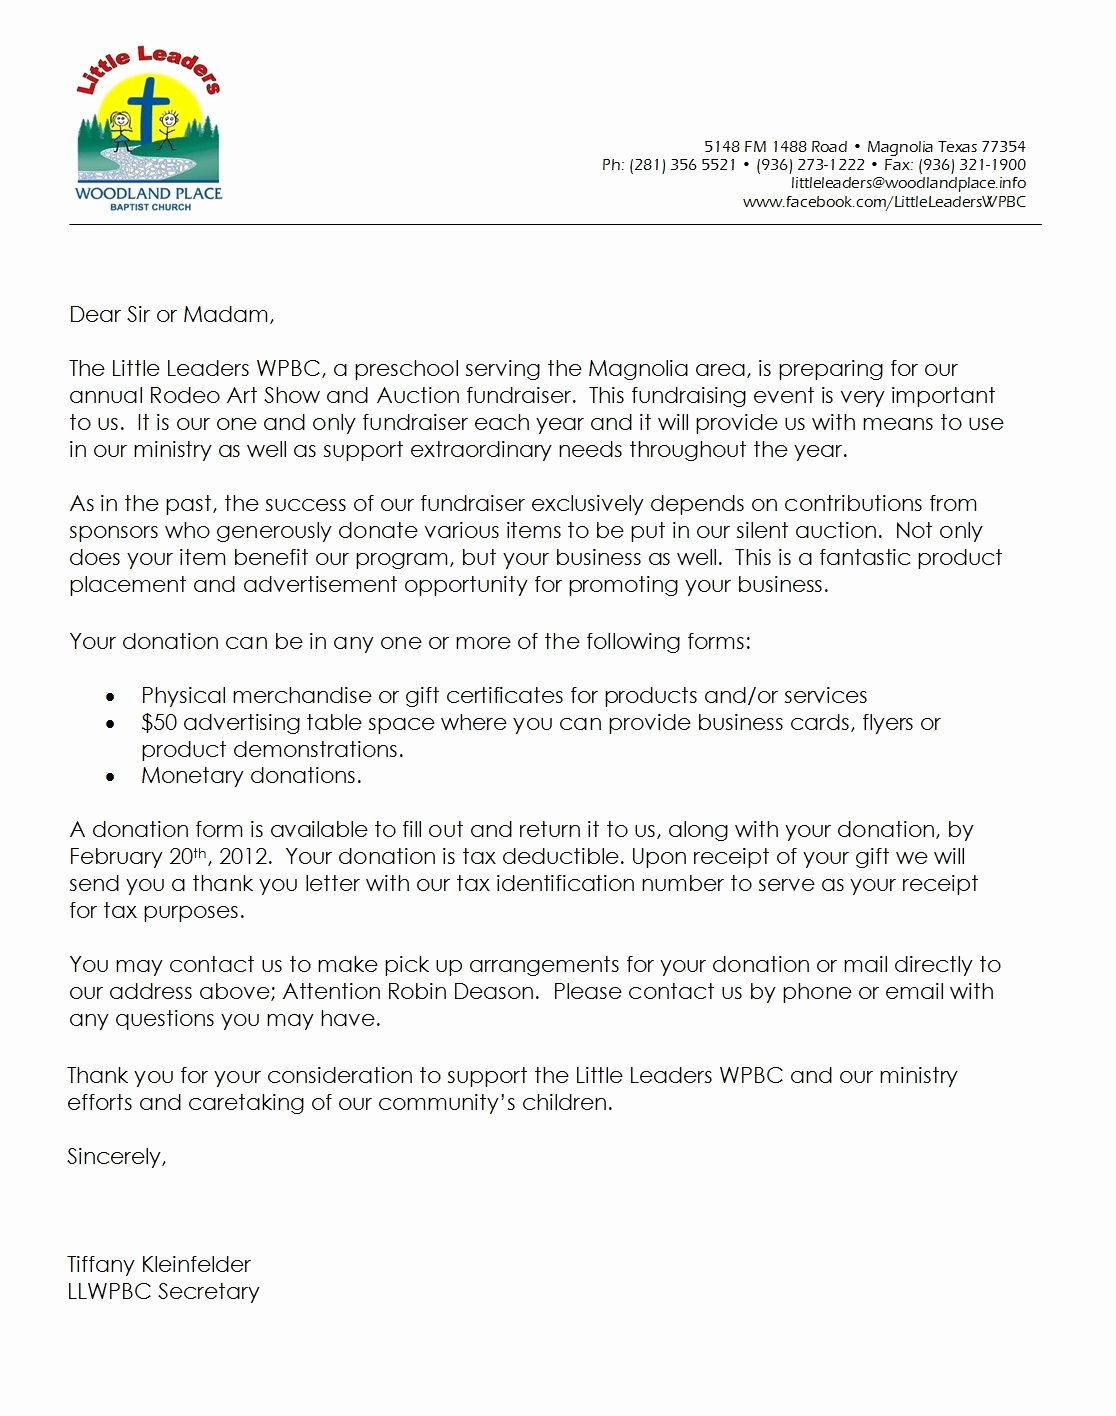 Donation Request Letter Template Inspirational Letter for Donations